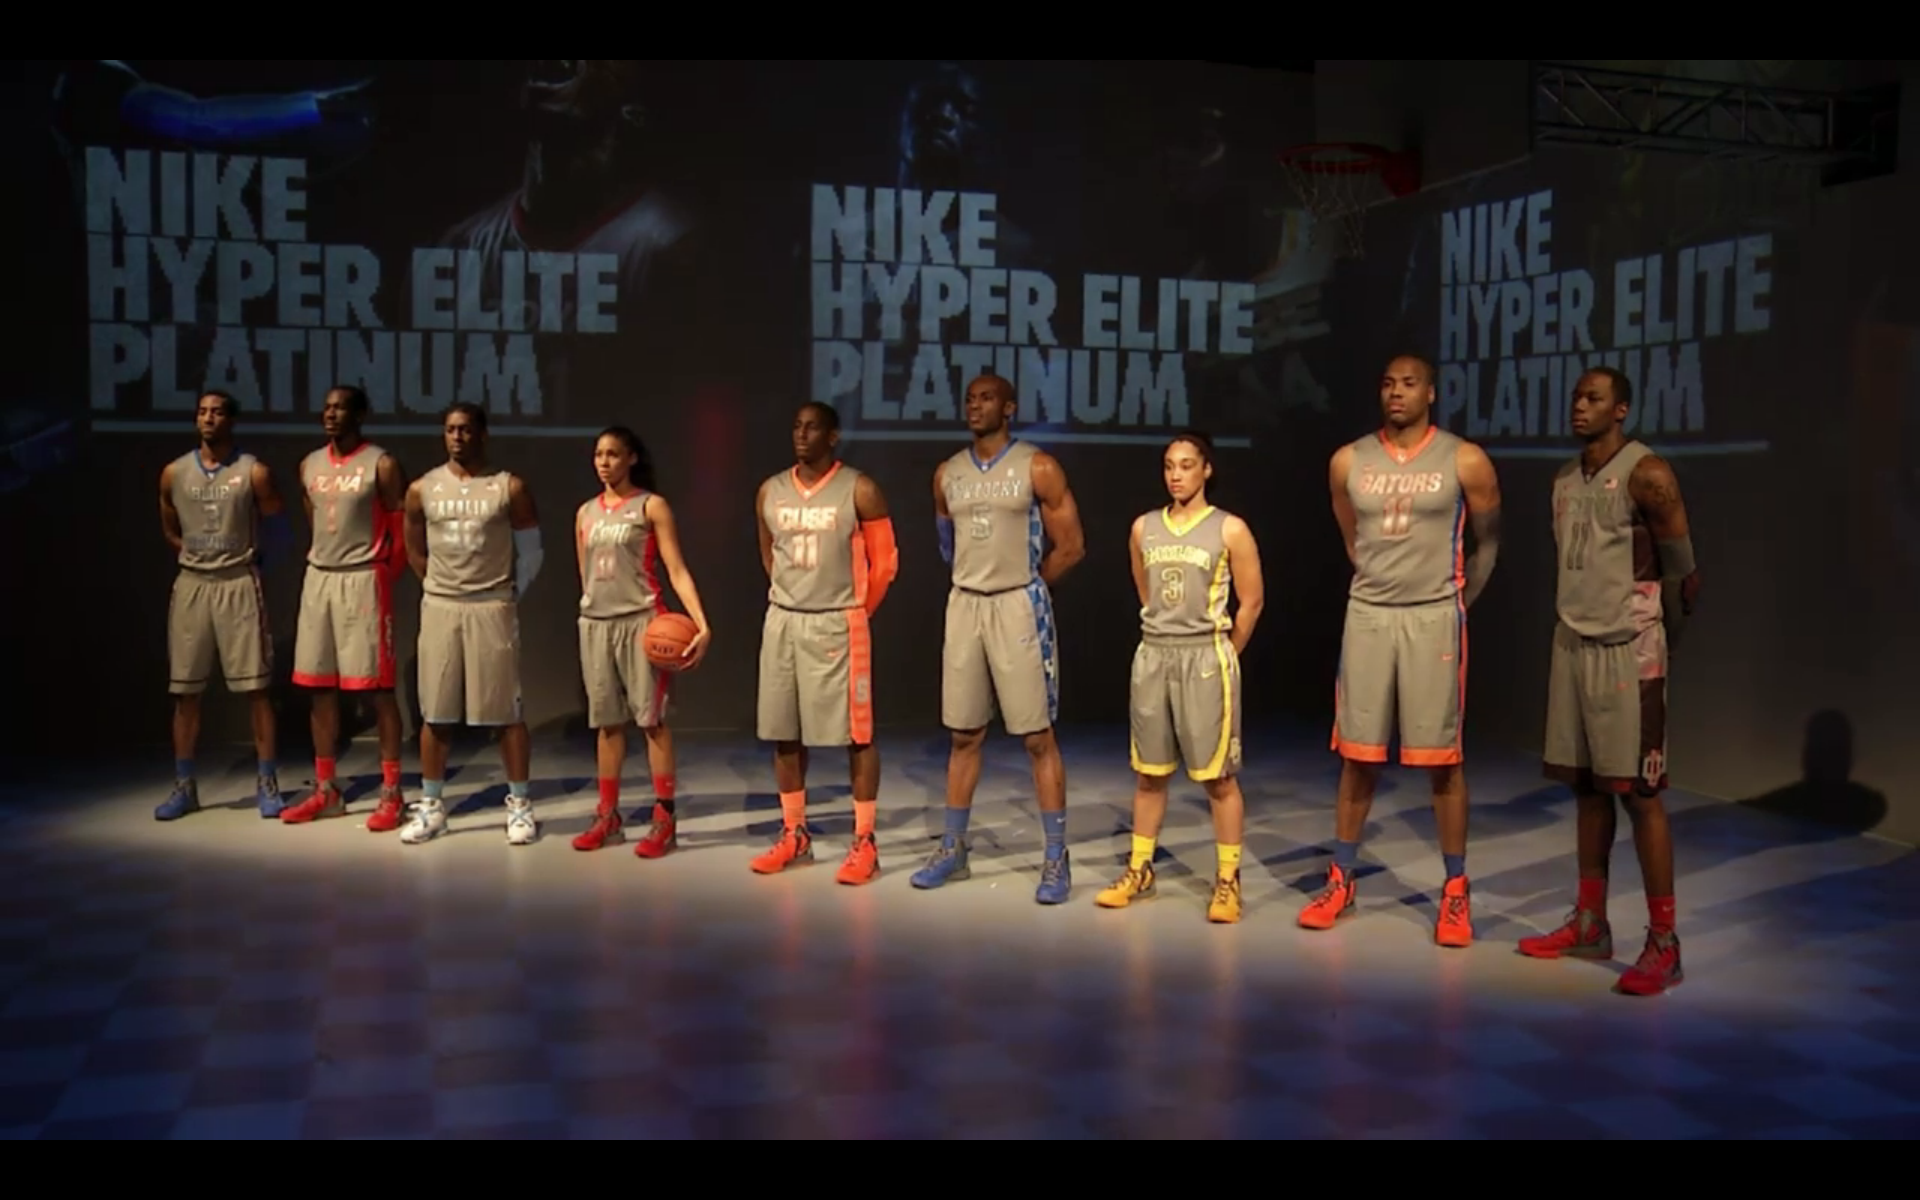 lowest price 63a46 34ecd Nike releases Hyper Elite Platinum college basketball ...